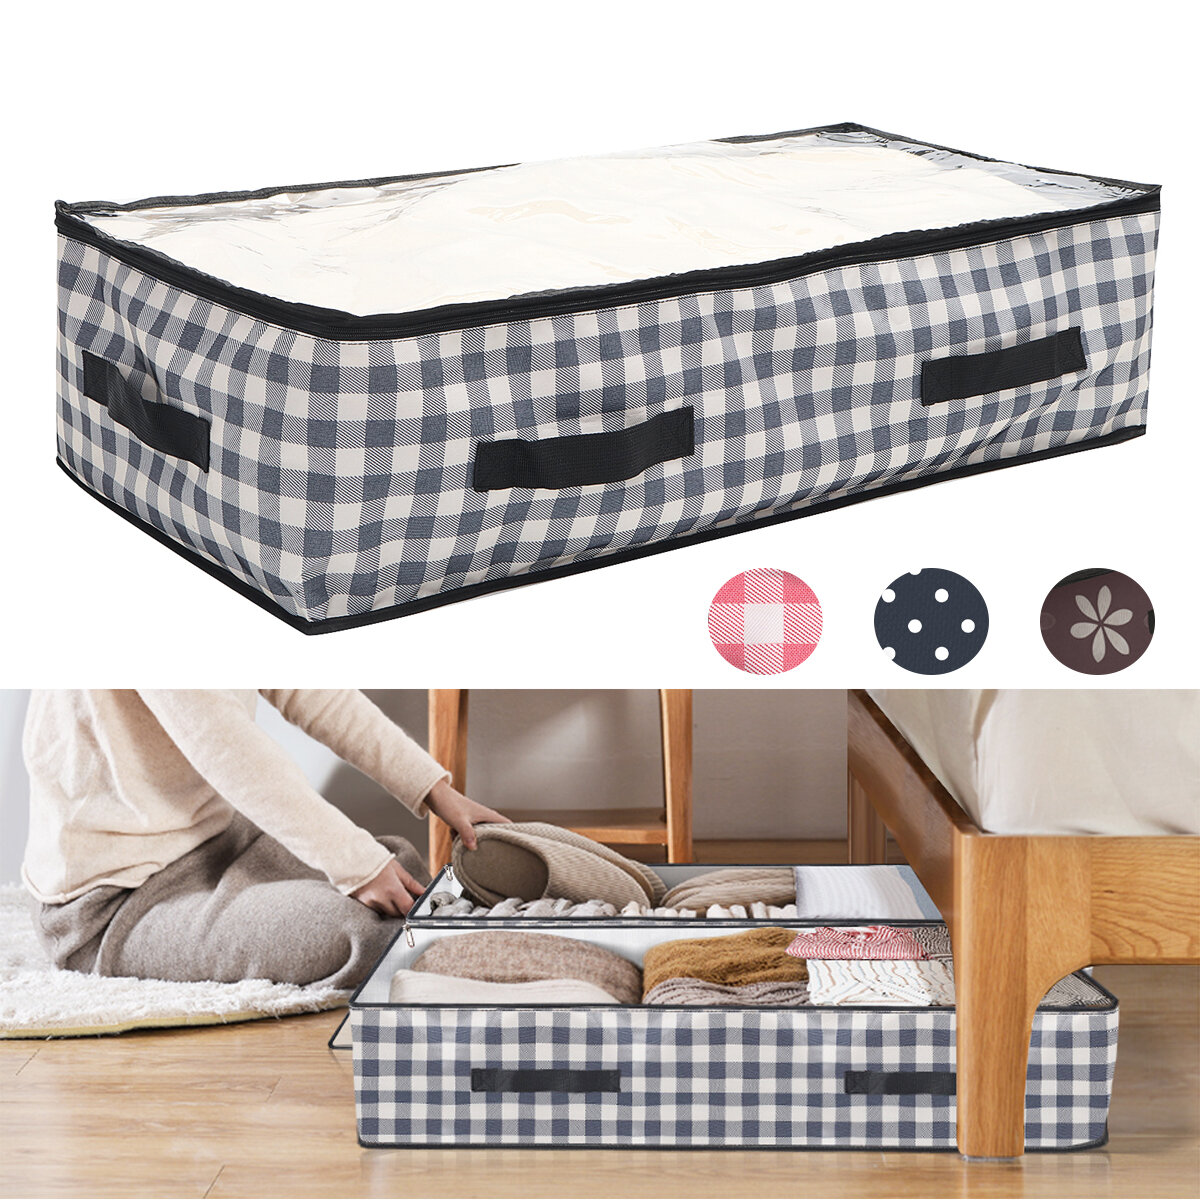 KING DO WAY 2PCS Bed Storage Bag Foldable 600D Oxford Cloth Large Capacity Waterproof Seam Resistant Clothes Storage Bag